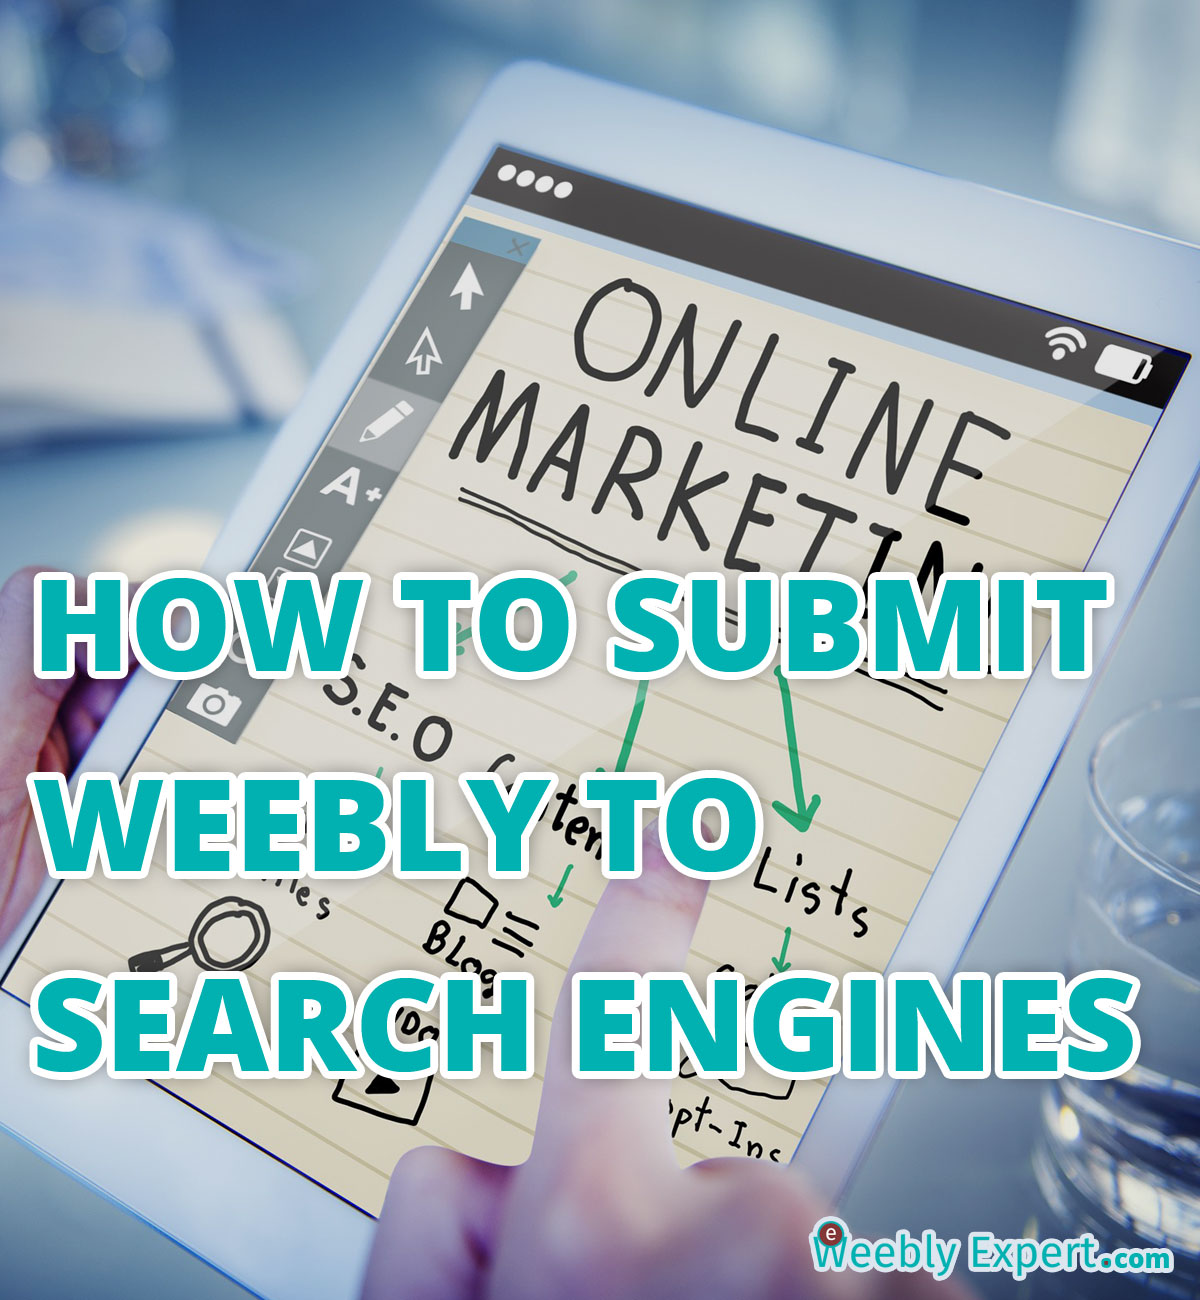 SUBMIT WEEBLY WEBSITE TO SEARCH ENGINES